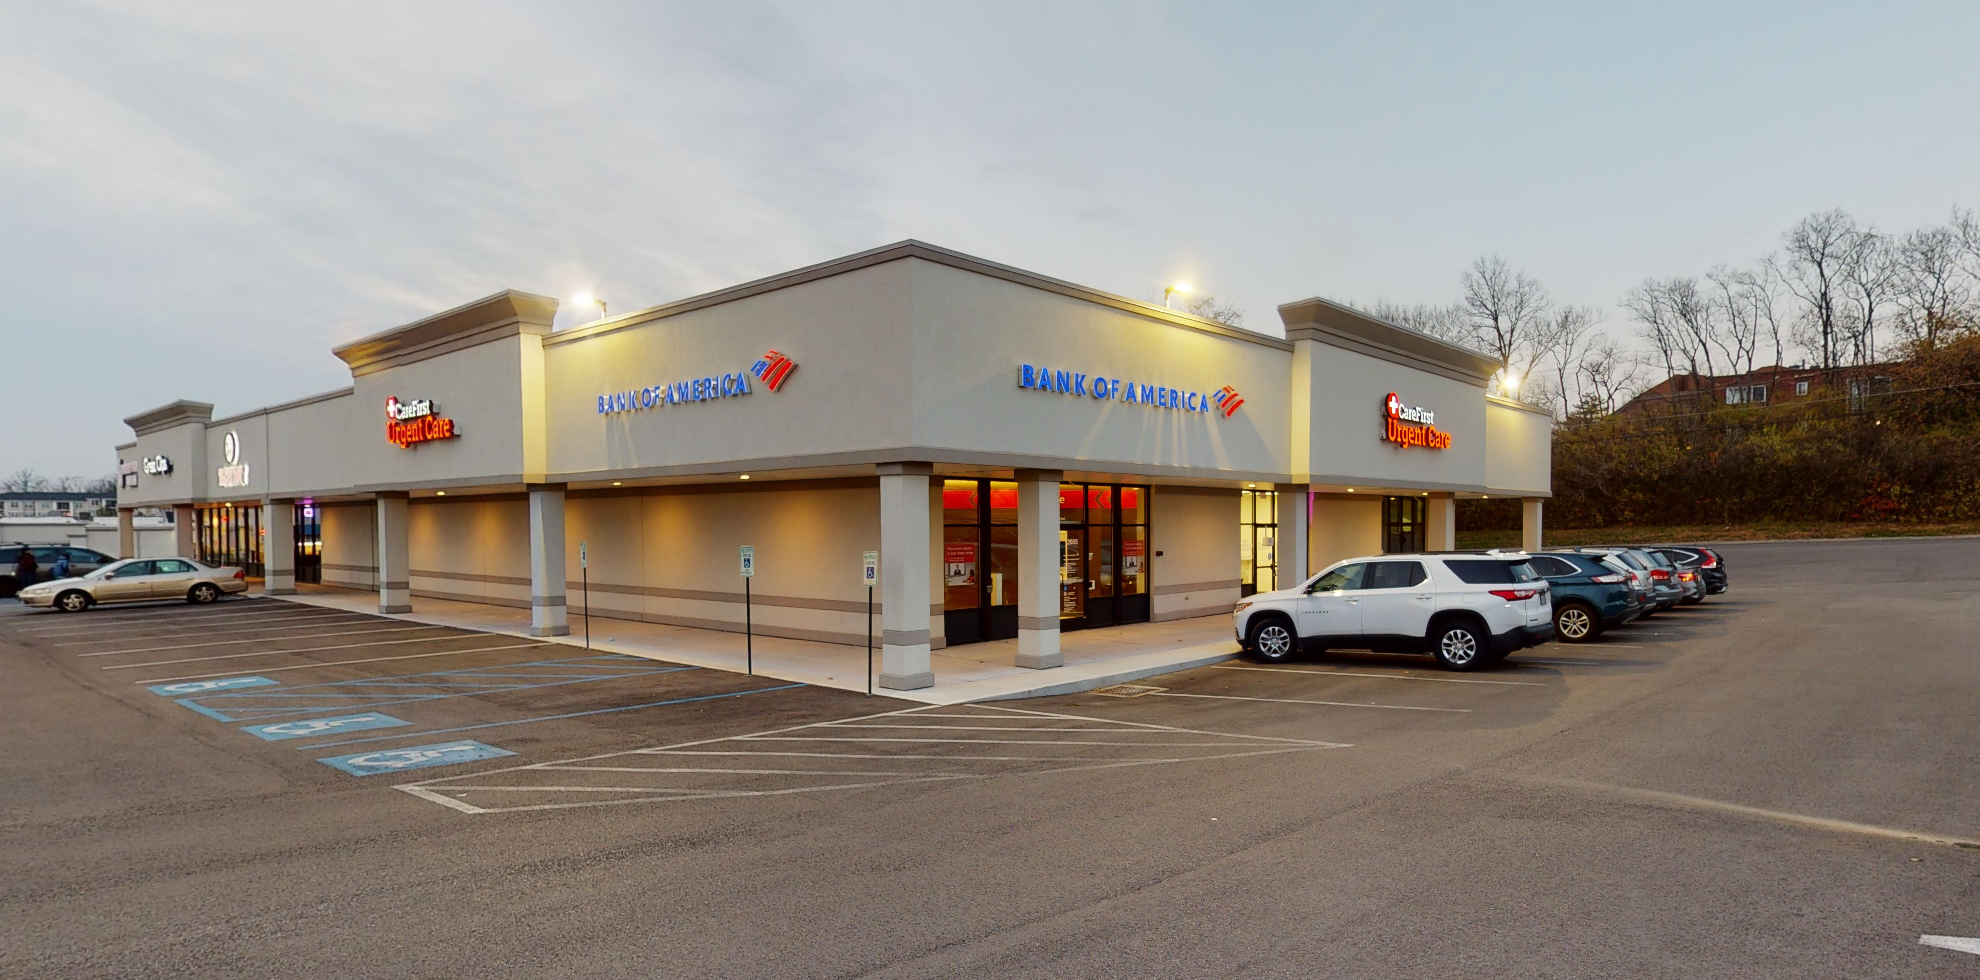 Bank of America Advanced Center with walk-up ATM | 12085 Lebanon Rd, Sharonville, OH 45241